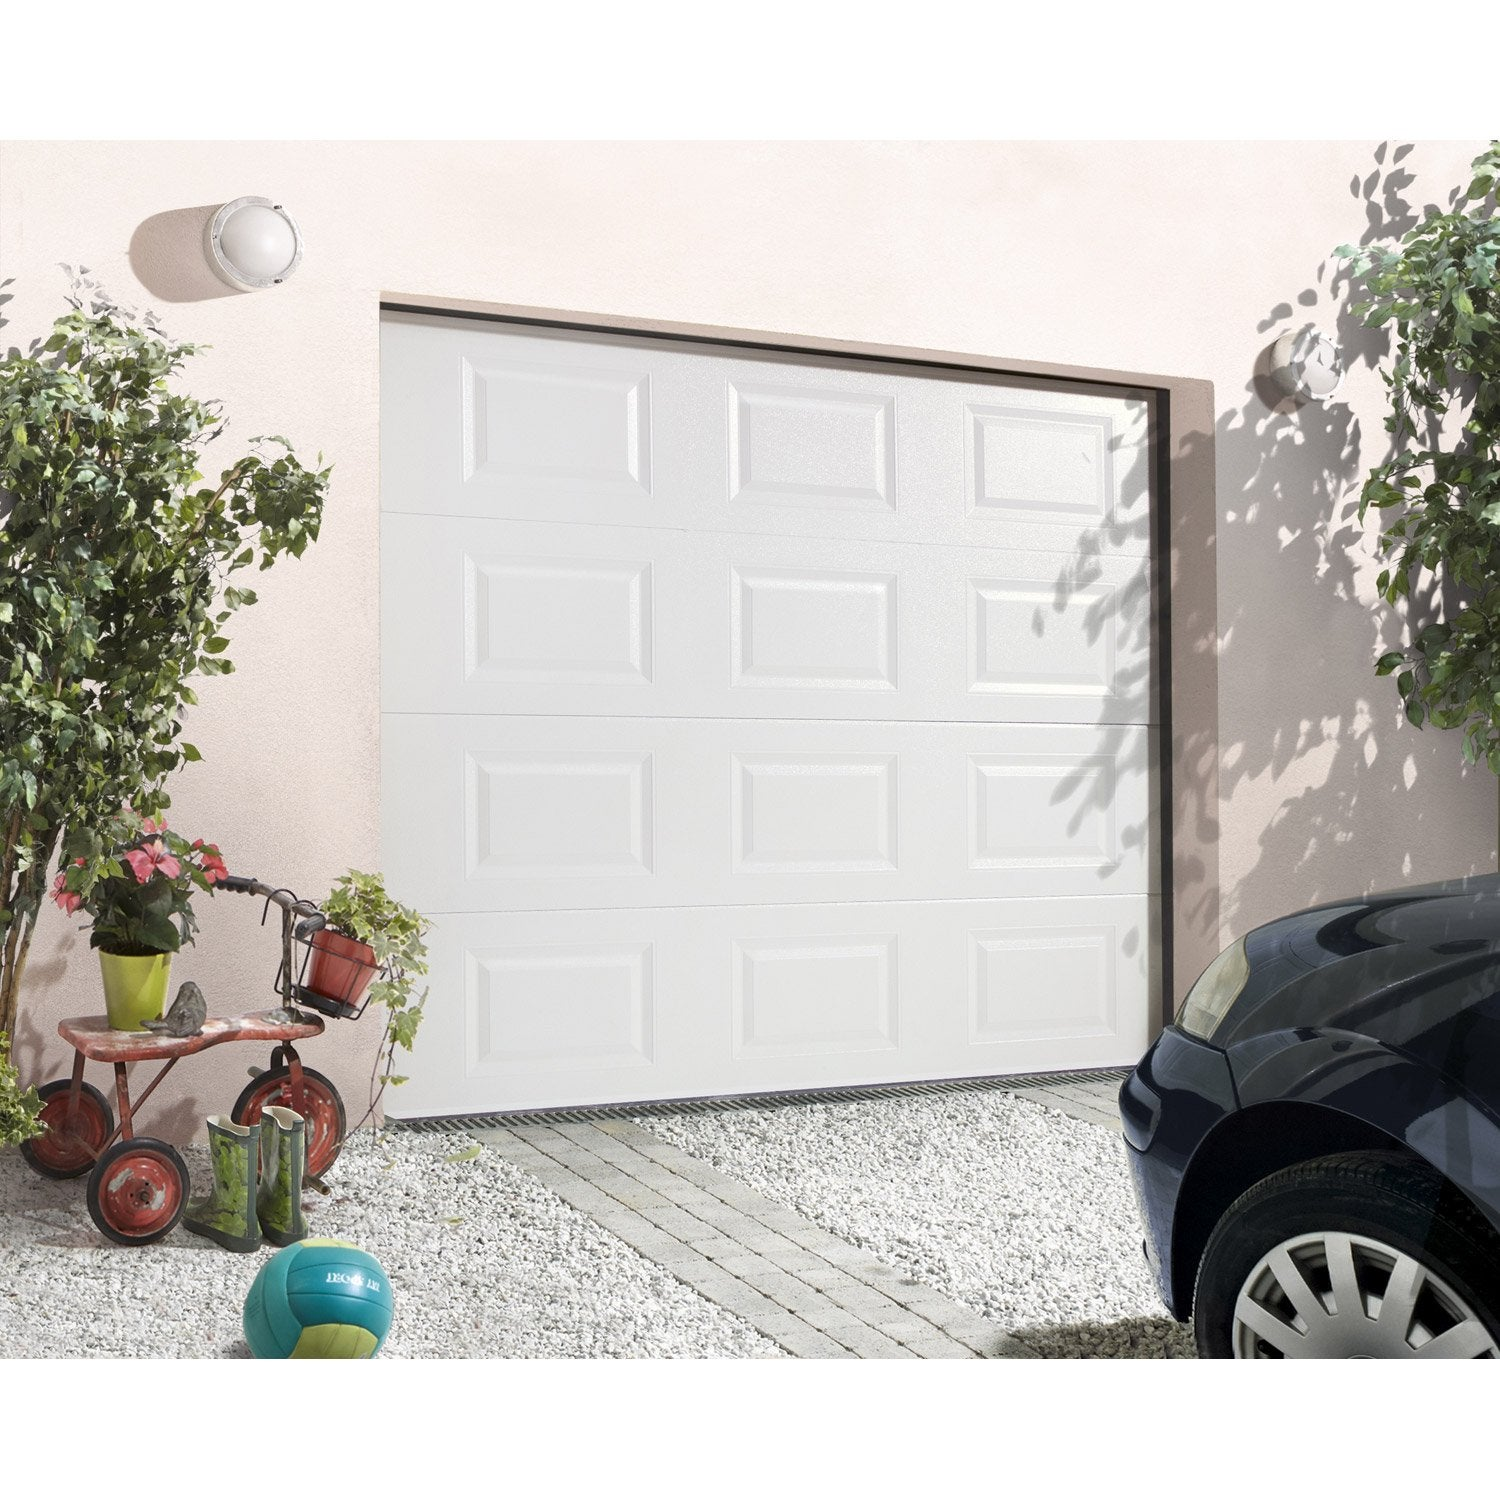 Porte de garage sectionnelle primo x cm for Porte de garage sectionnelle 250 x 200